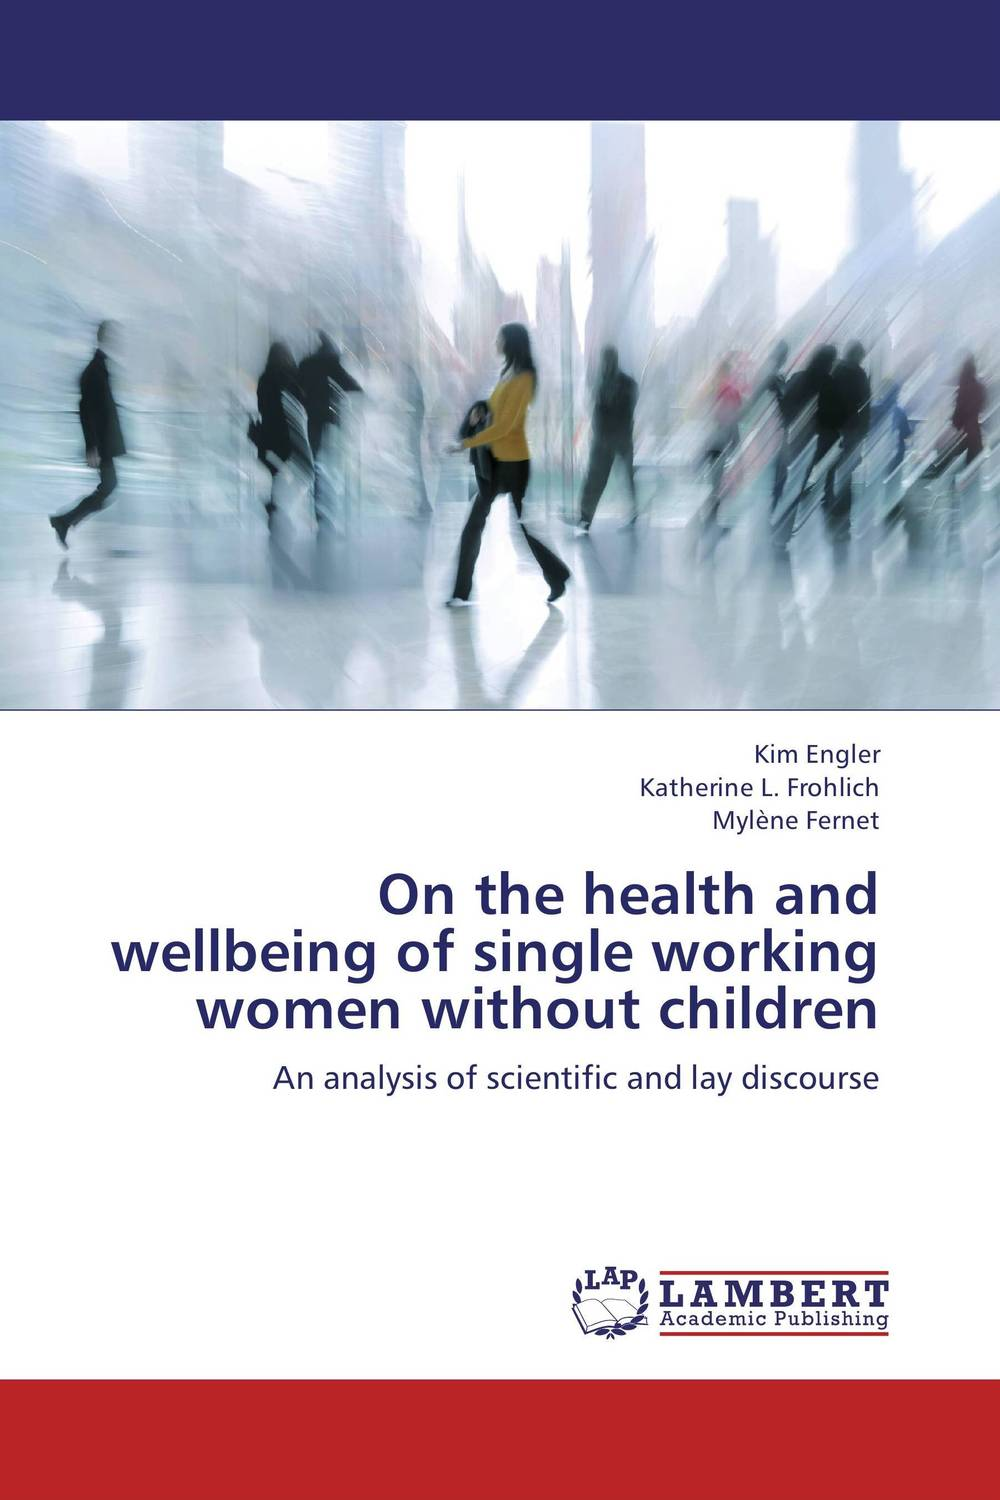 On the health and wellbeing of single working women without children